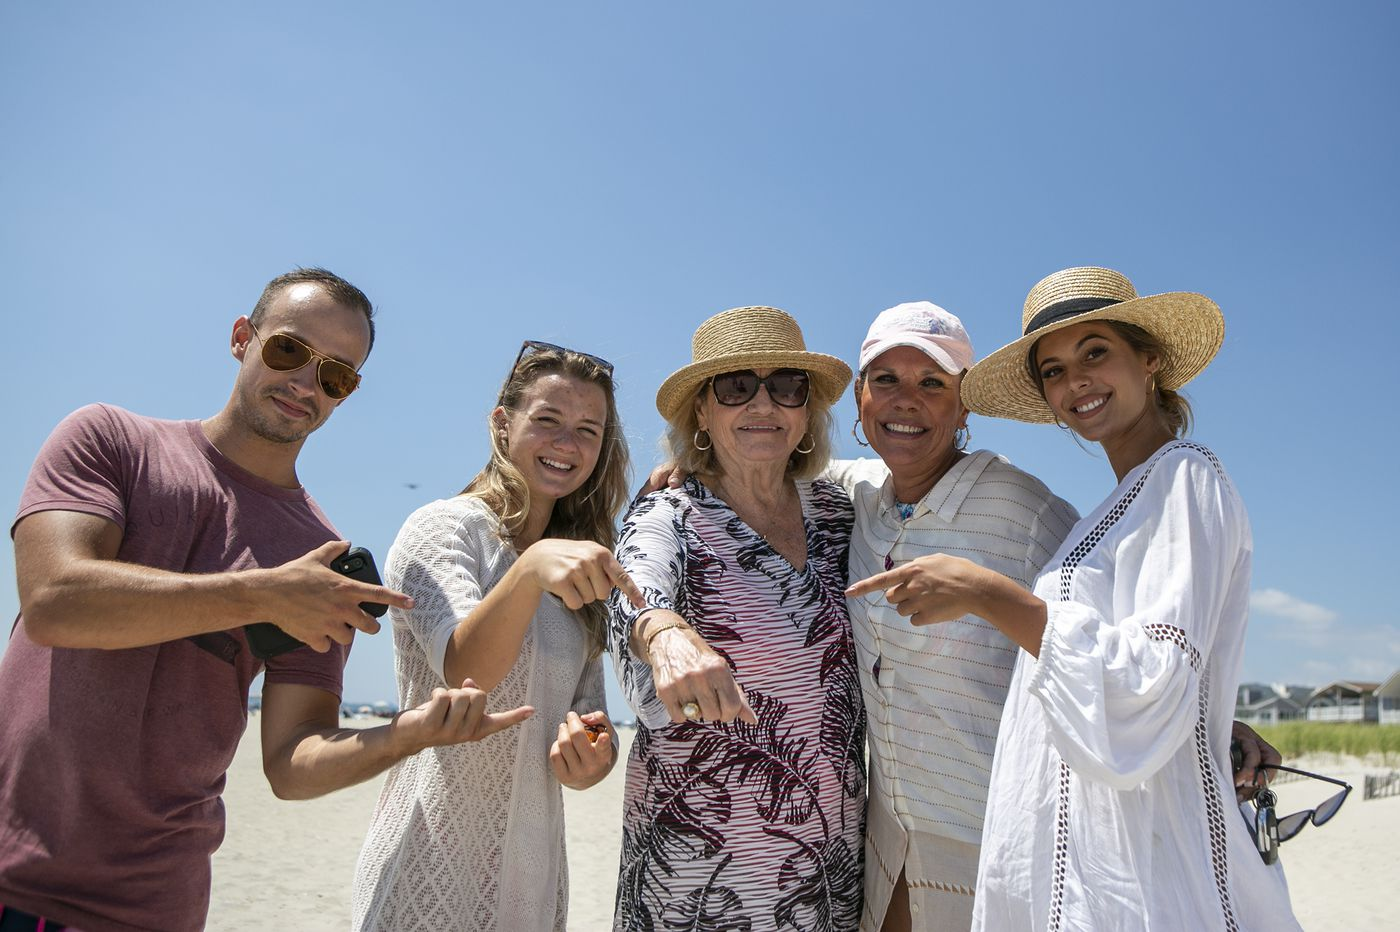 On the beach in Ocean City, a widow's treasured bracelet is lost in the sand. Will she get it back?